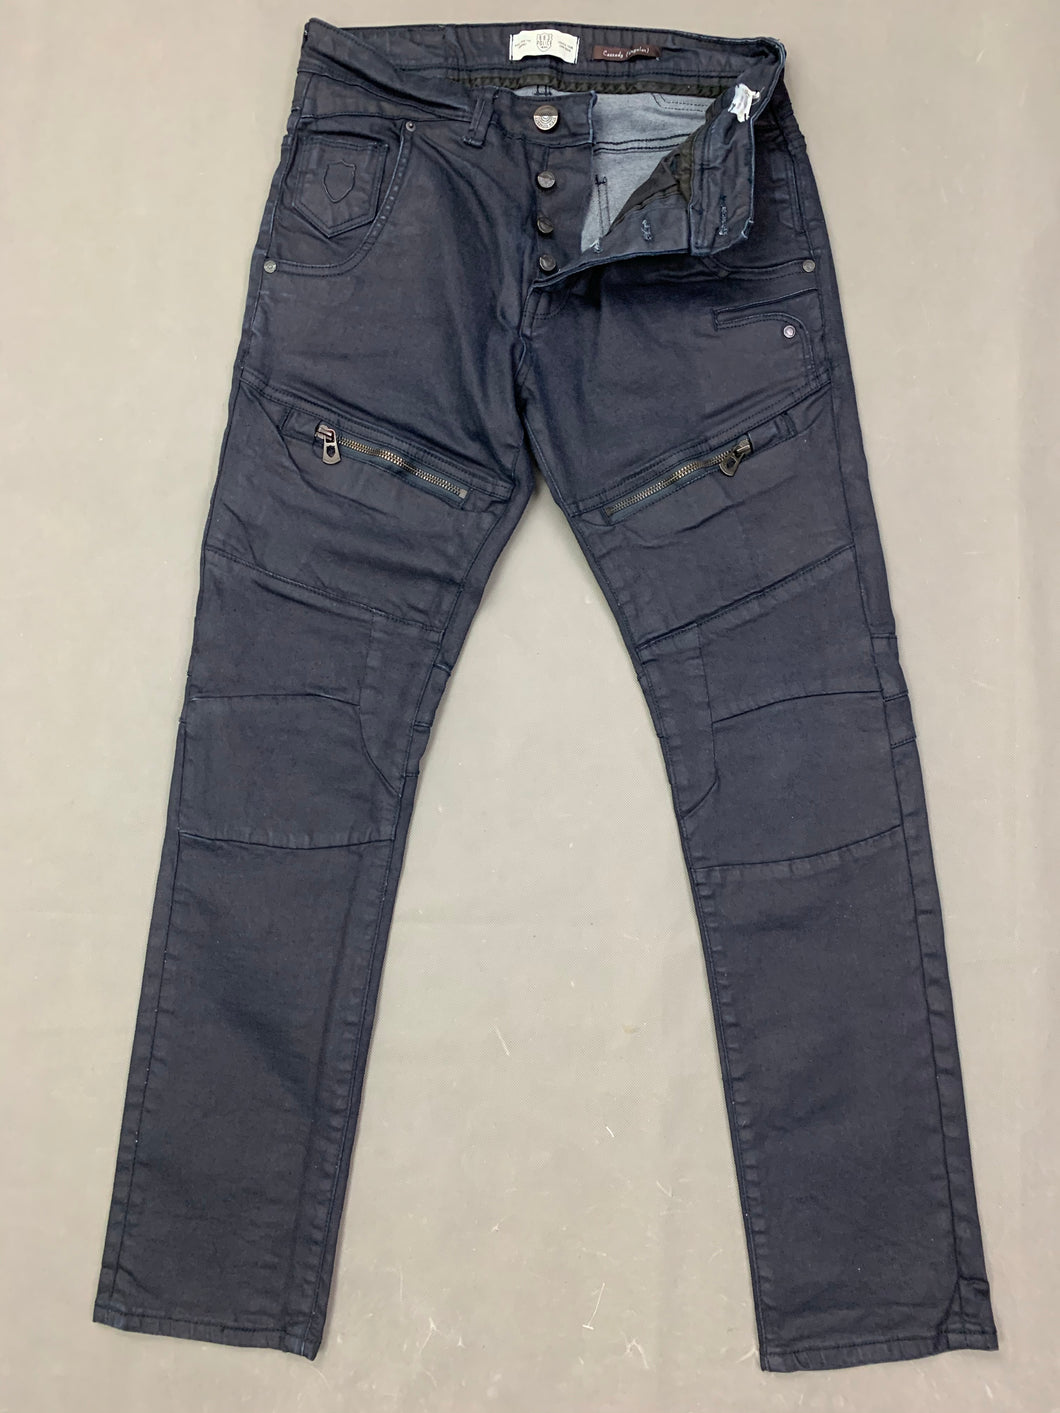 883 POLICE Mens CASSADY Blue Denim Regular Fit JEANS Size Waist 32